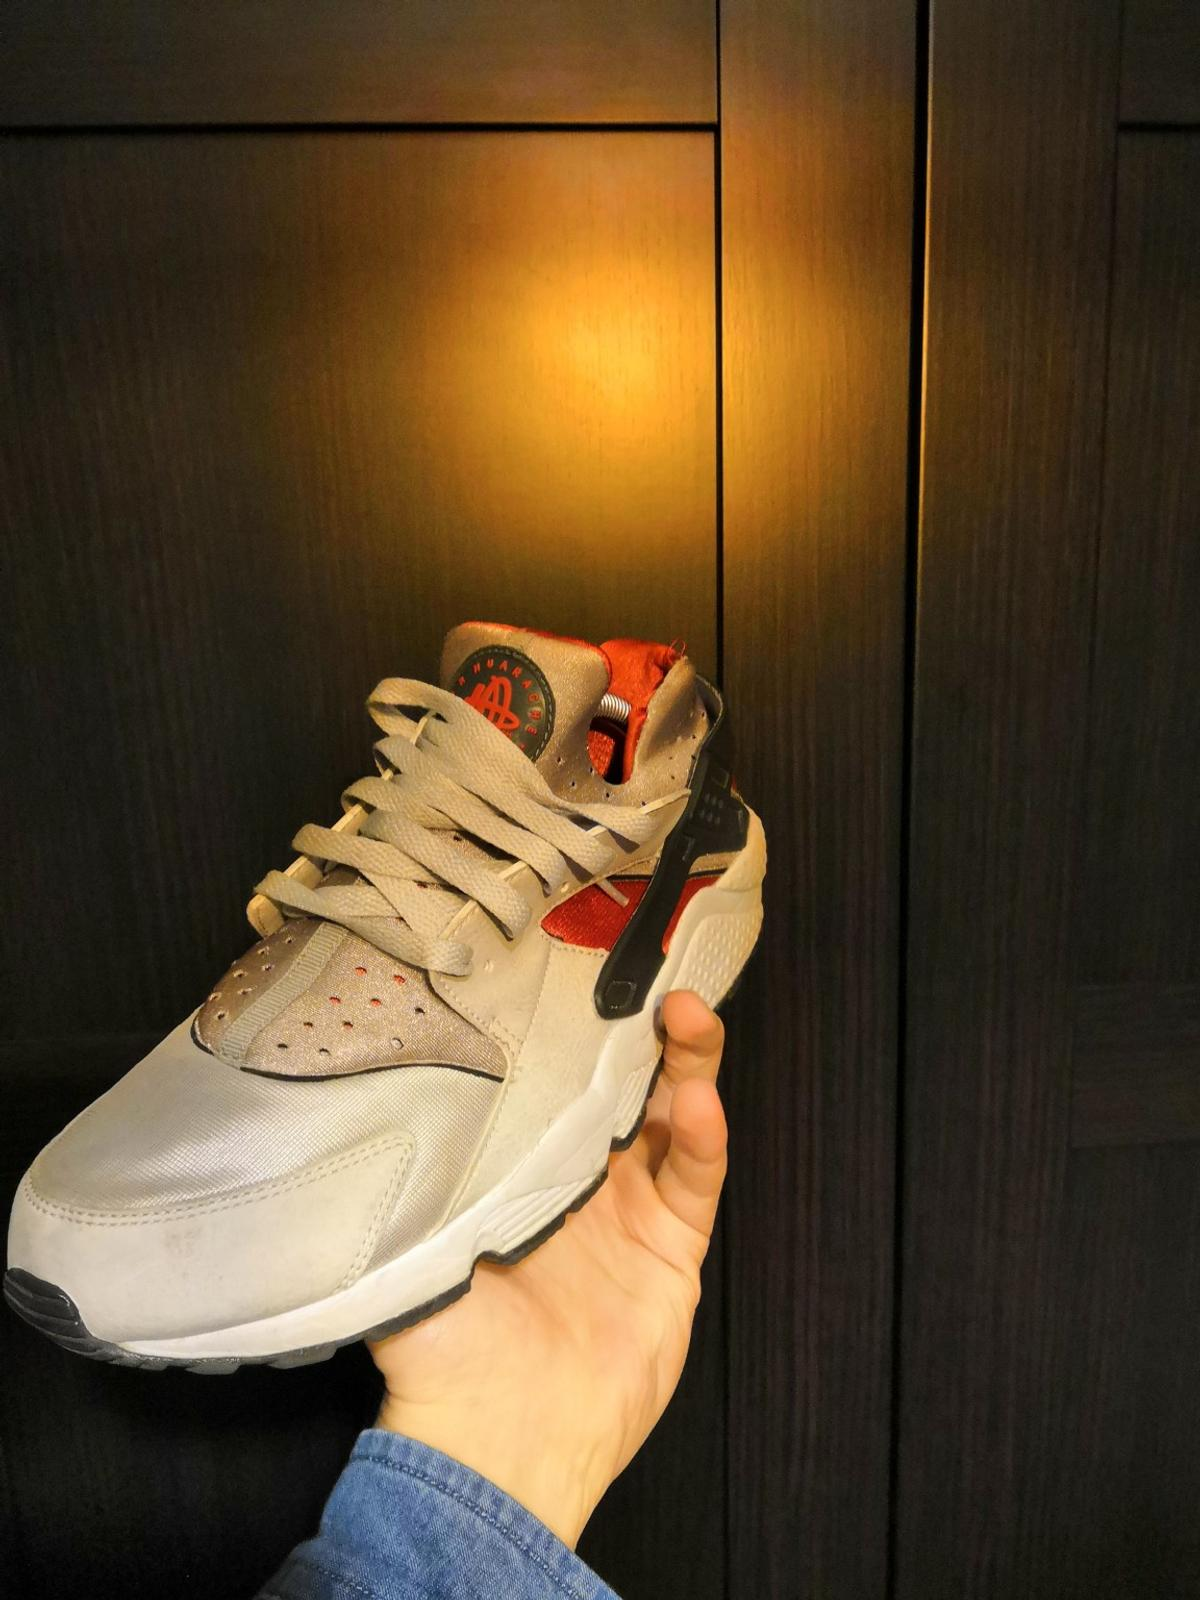 Nike Huarache size UK 9 Silver/Red in E14 London for £20.00 for ...